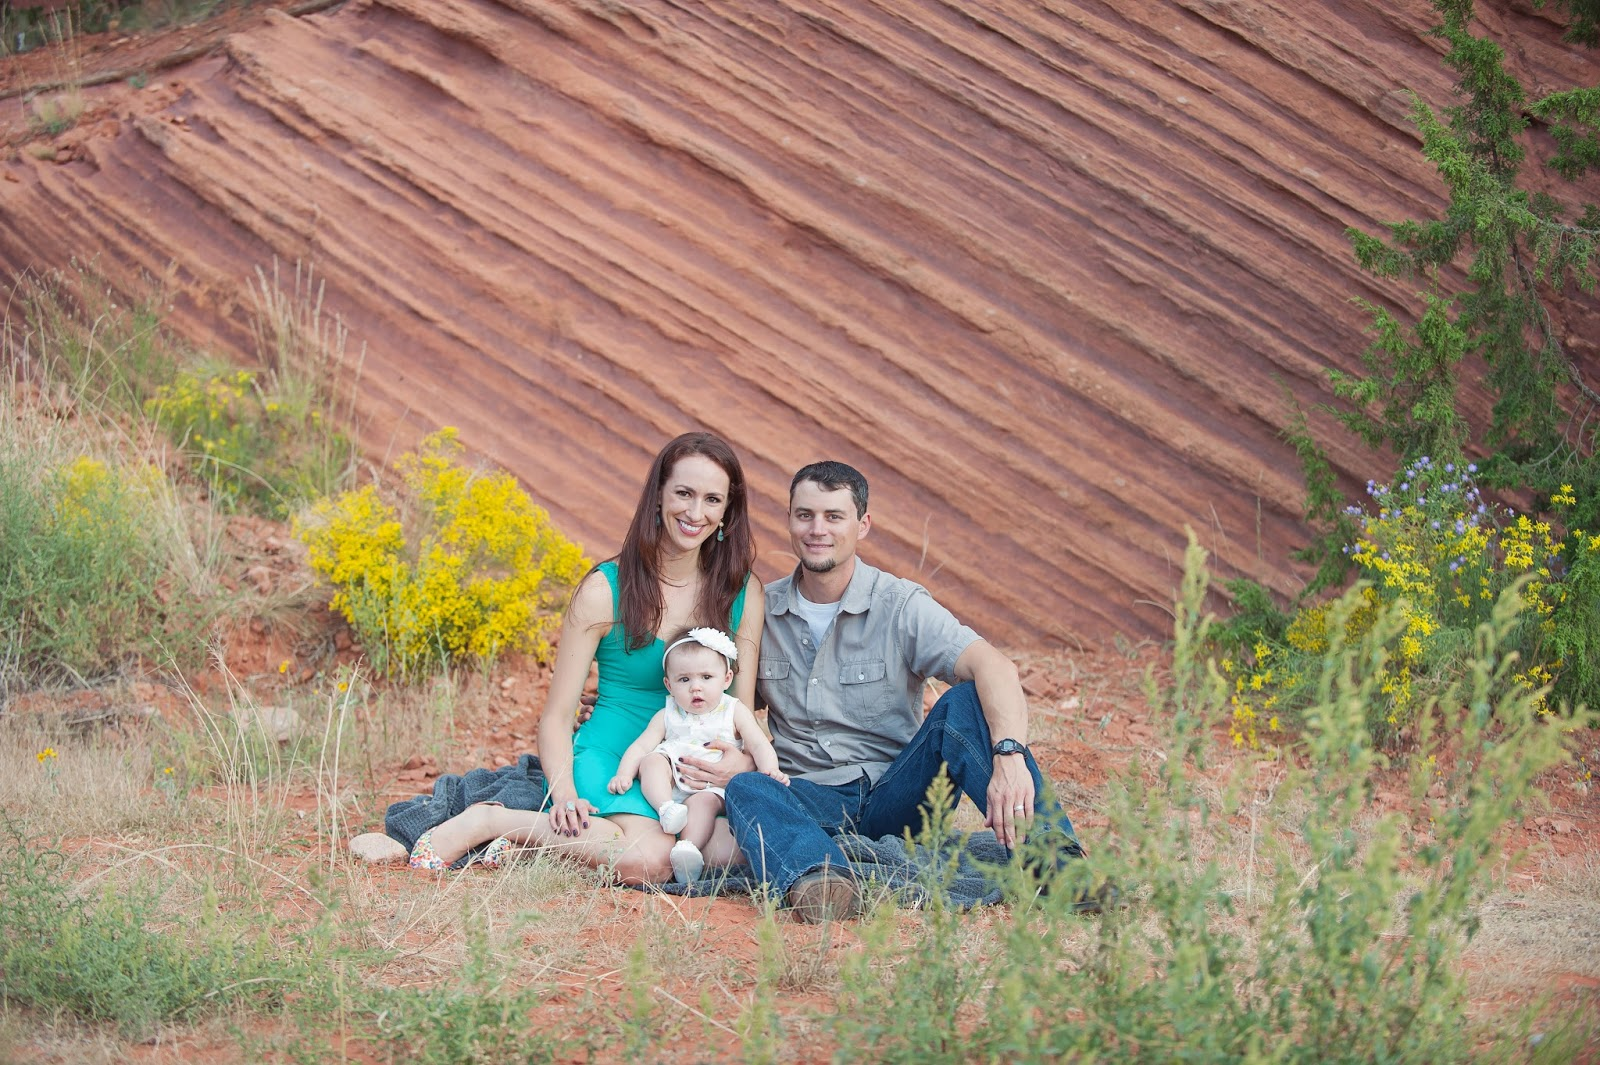 Family photography, photographer in albuquerque, photographs in albuquerque, family photoshoot in albuquerque, family photographer in albuquerque, jemez family photos, new mexico family photographer, albuquerque family photographer, Albuquerque family photography